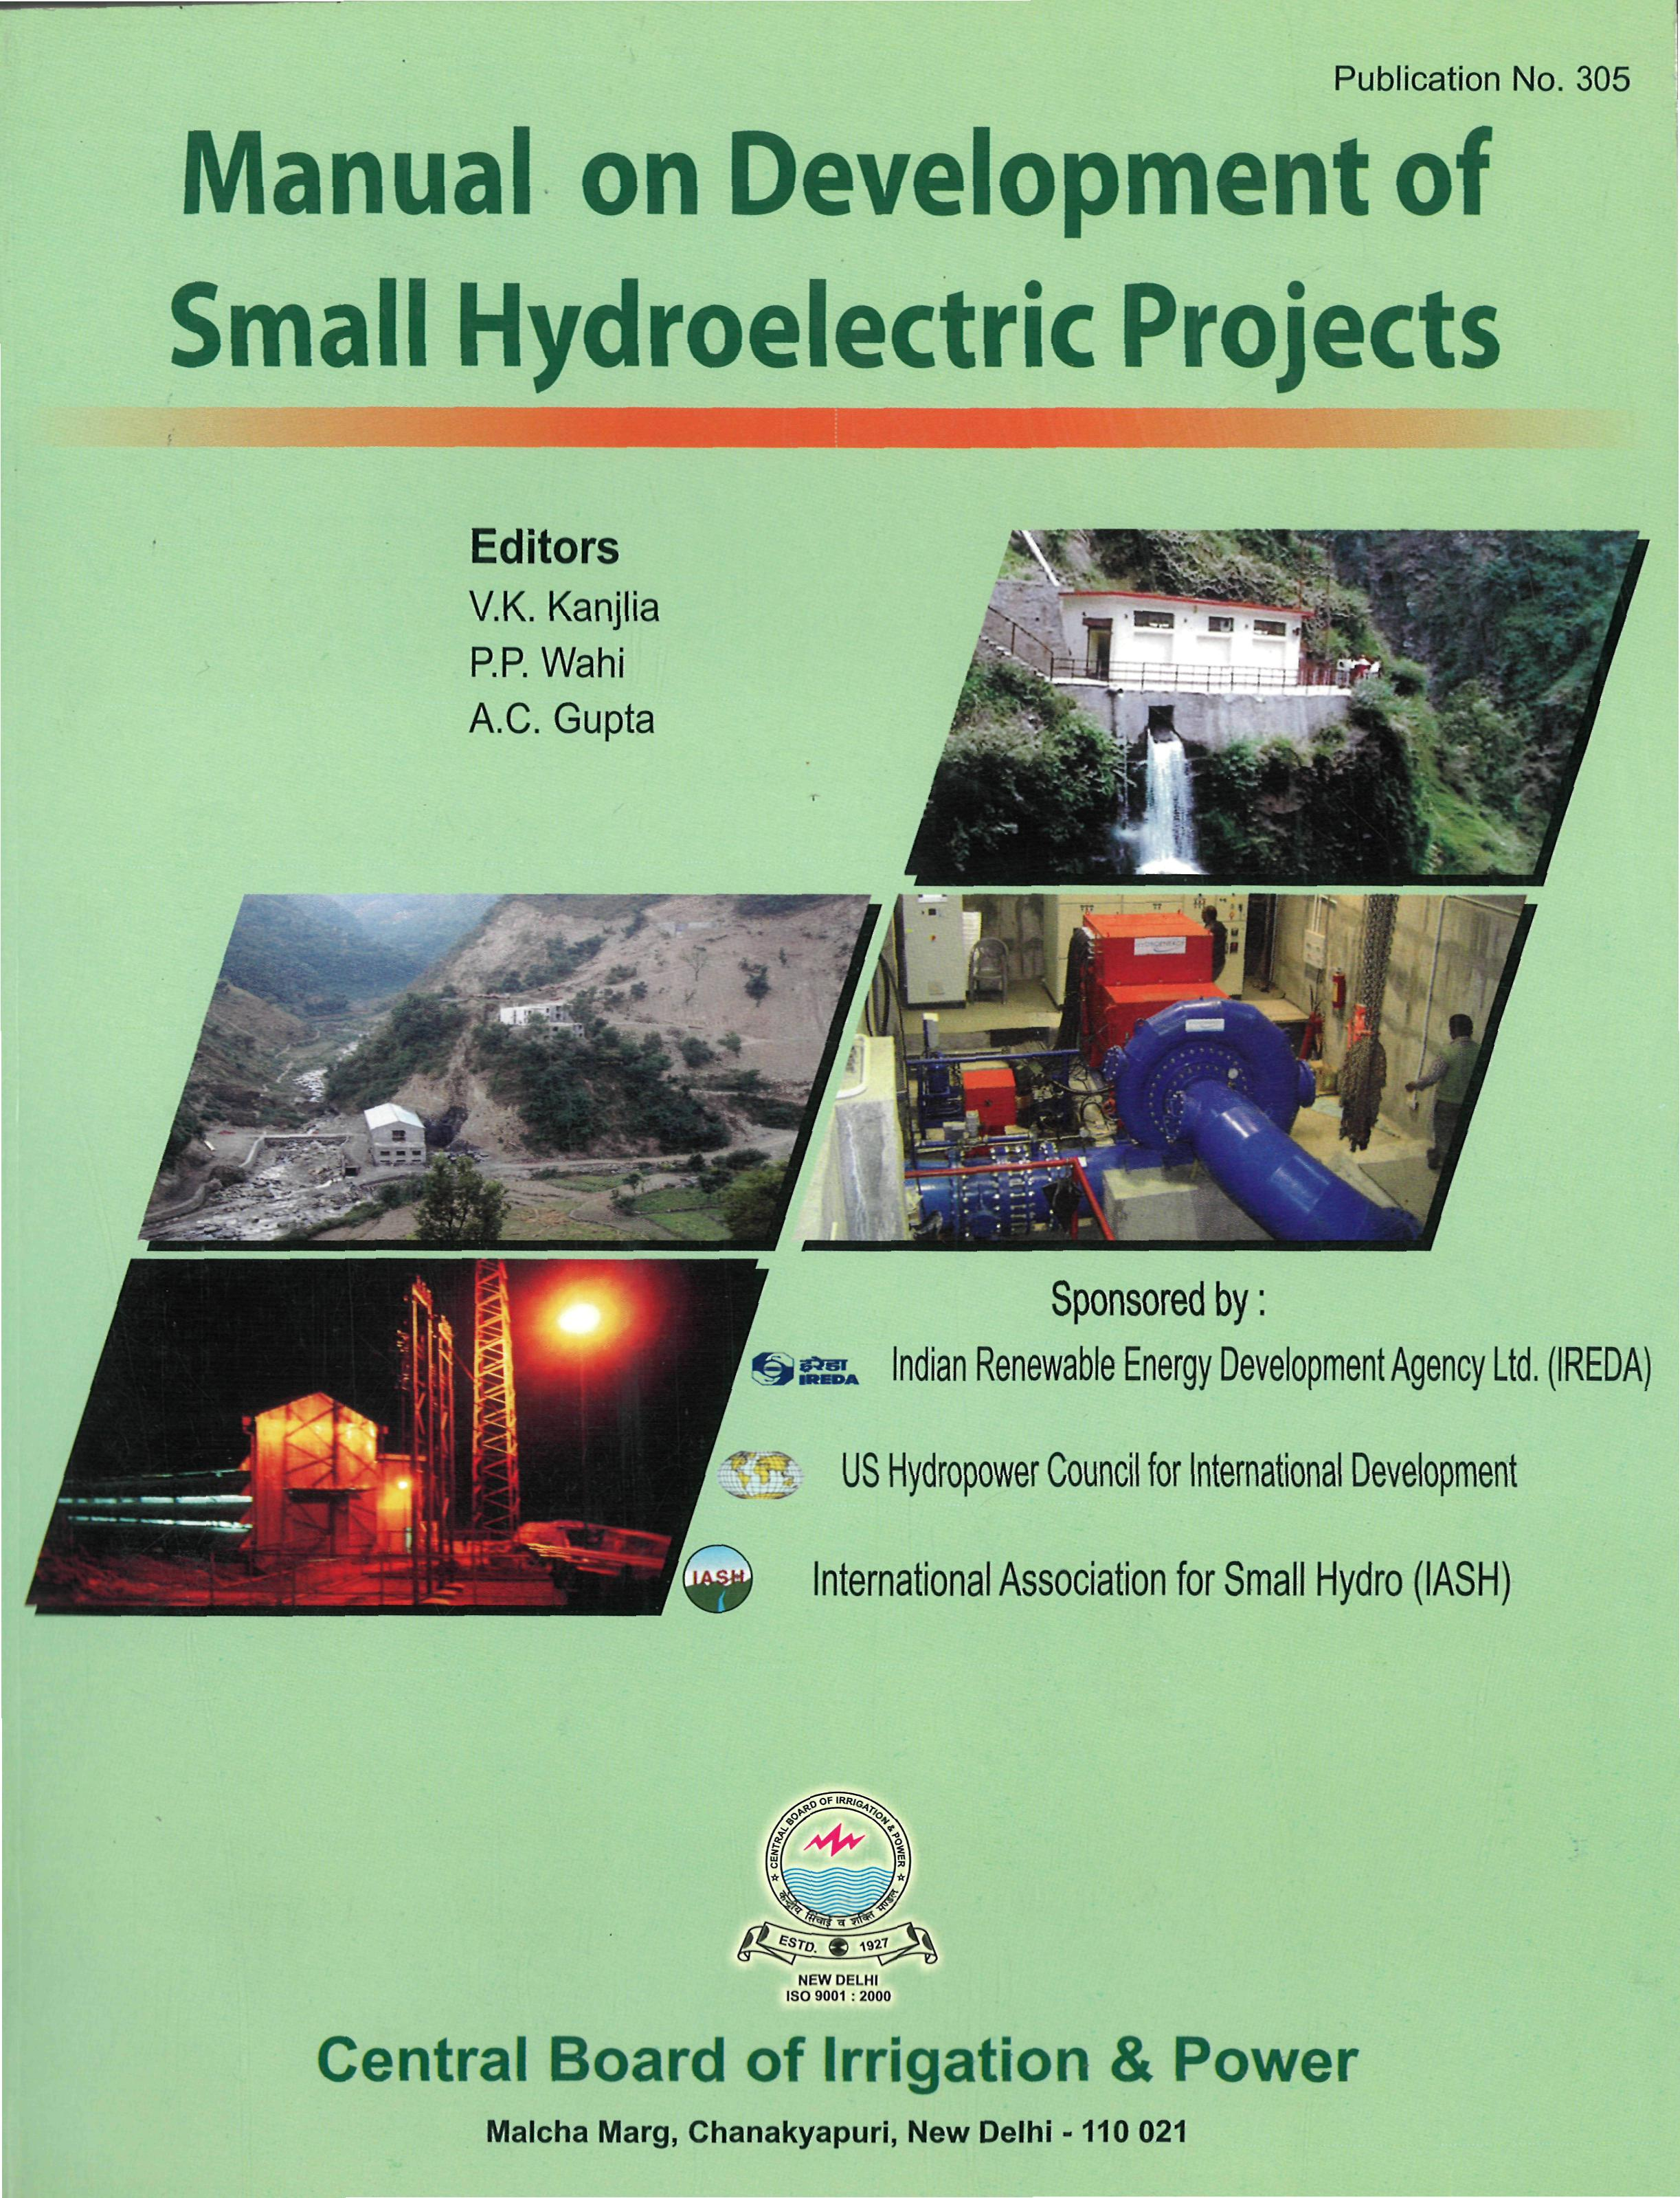 Book Title: Manual on Development of Small Hydroelectric Project